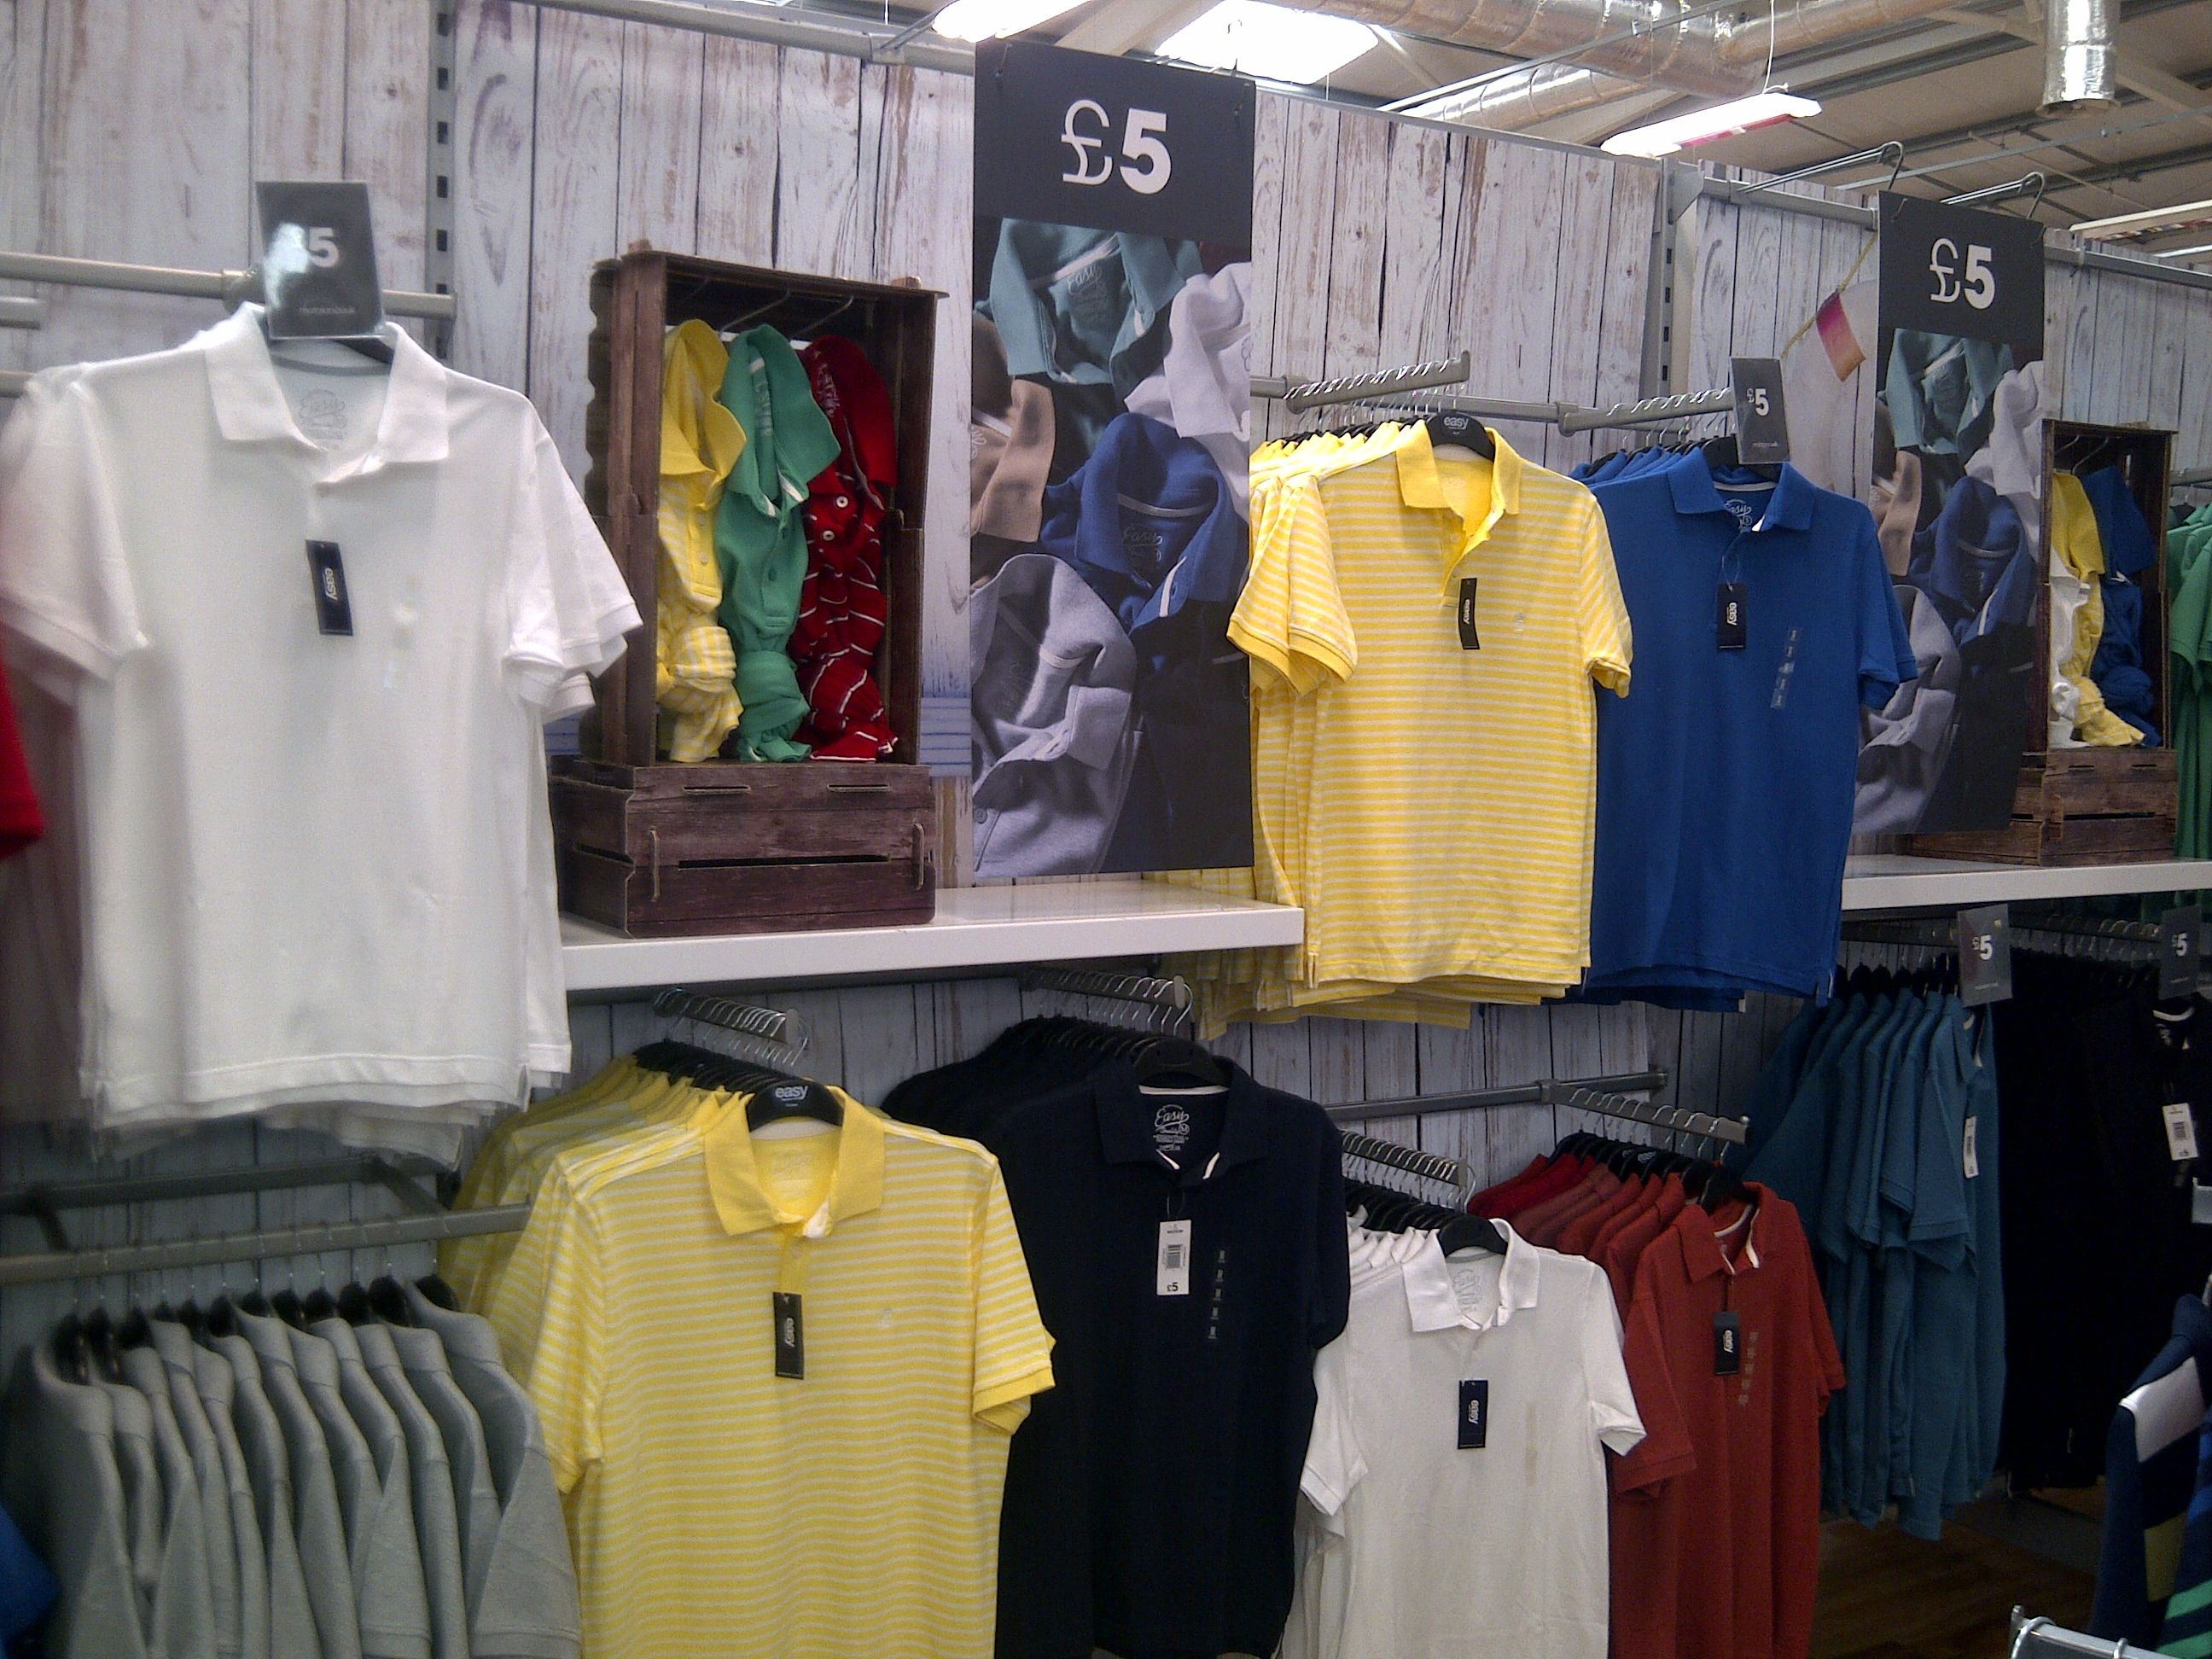 new concept 35ee5 93bcd Polo Shirt Display - As part of the table strategy I moved ...